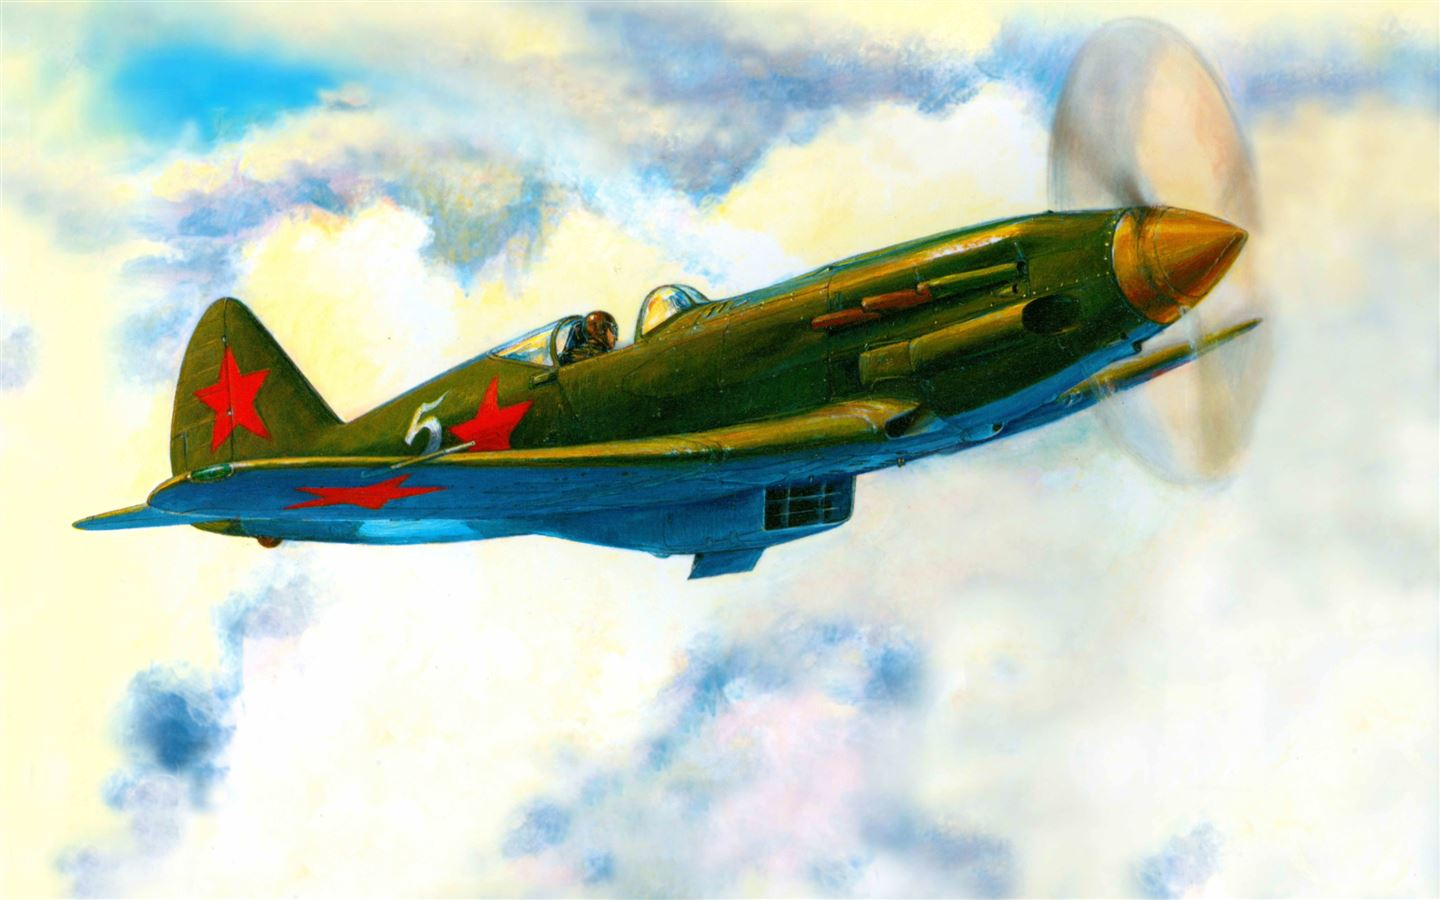 Fighter aircraft games for mac